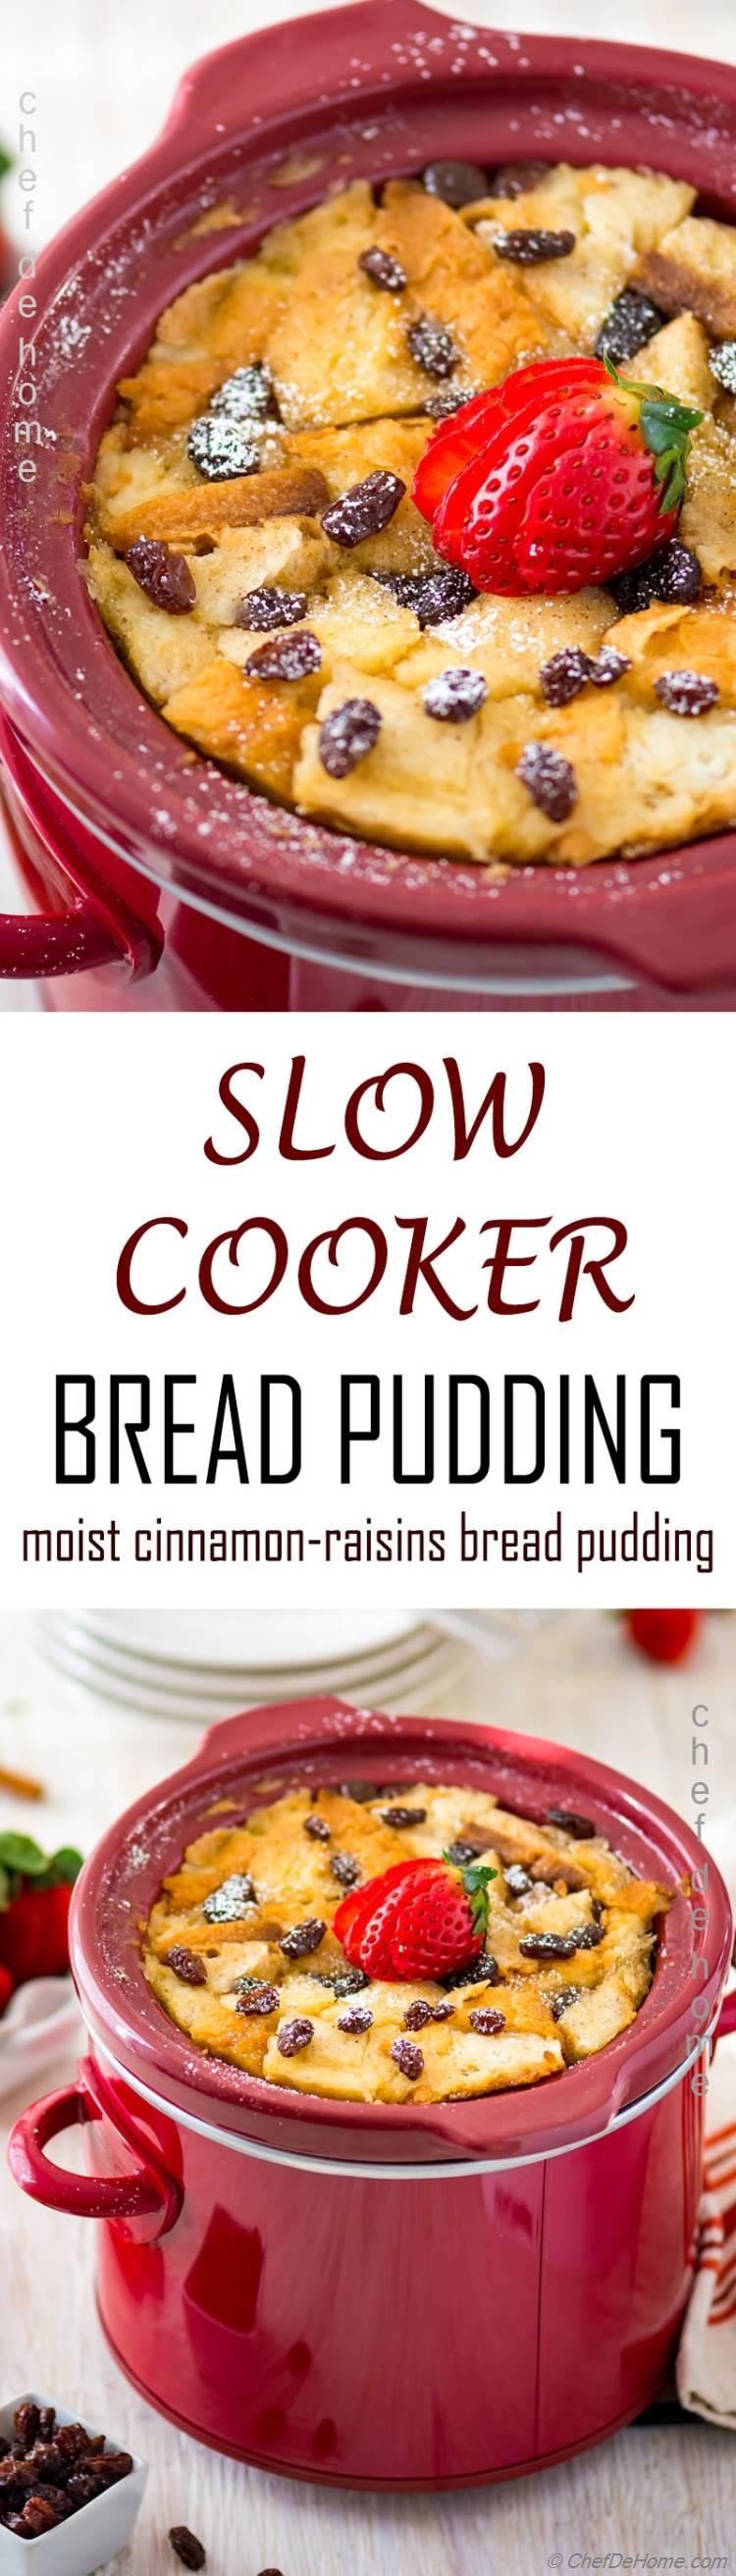 Learn how to make perfect bread pudding in slow cooker